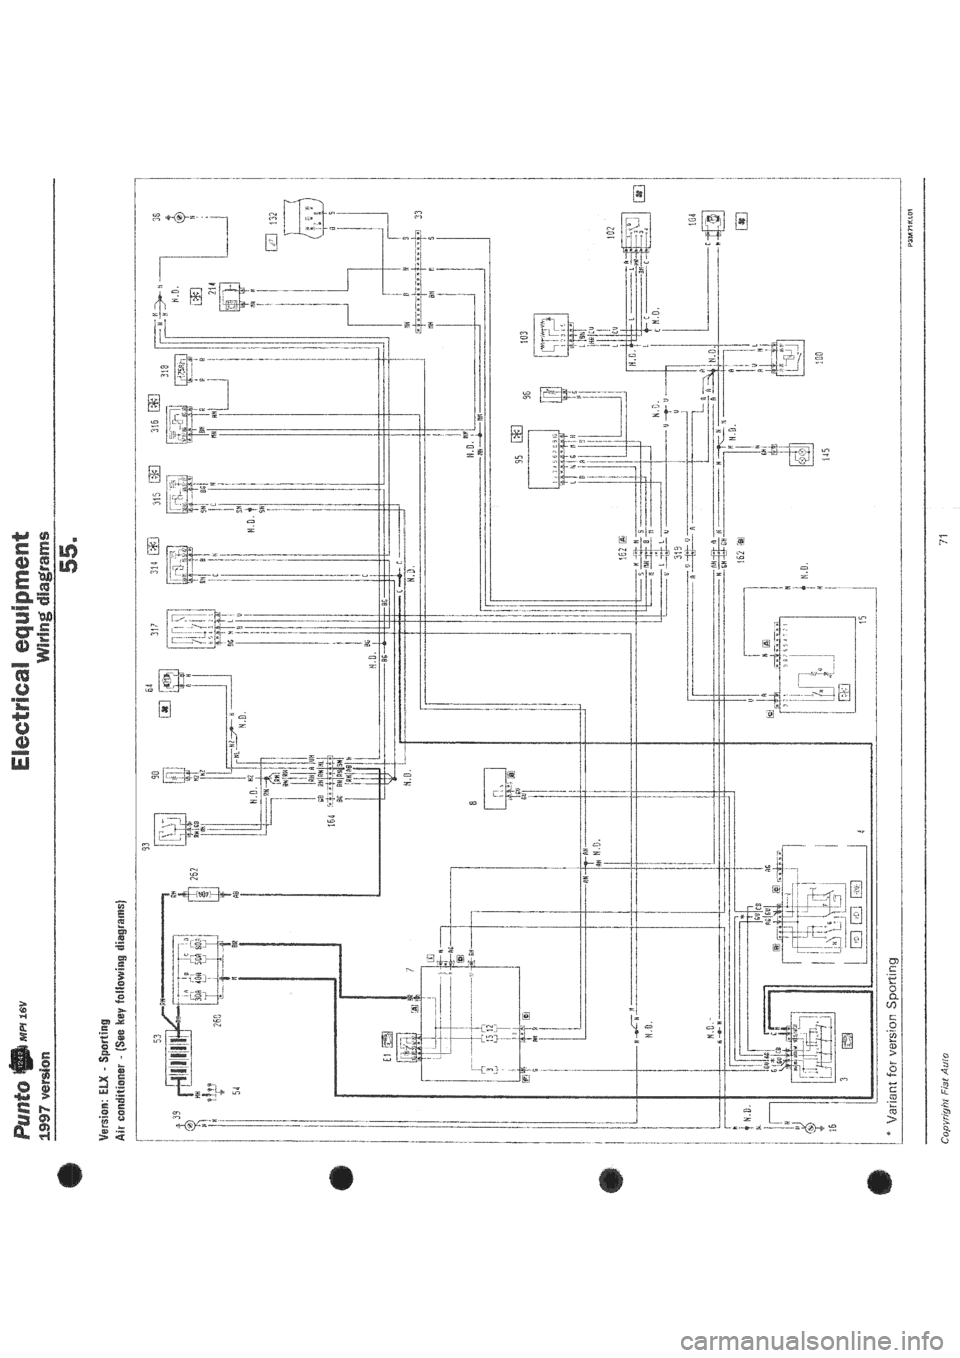 FIAT PUNTO 1997 176 1G Wiring Diagrams Workshop Manual